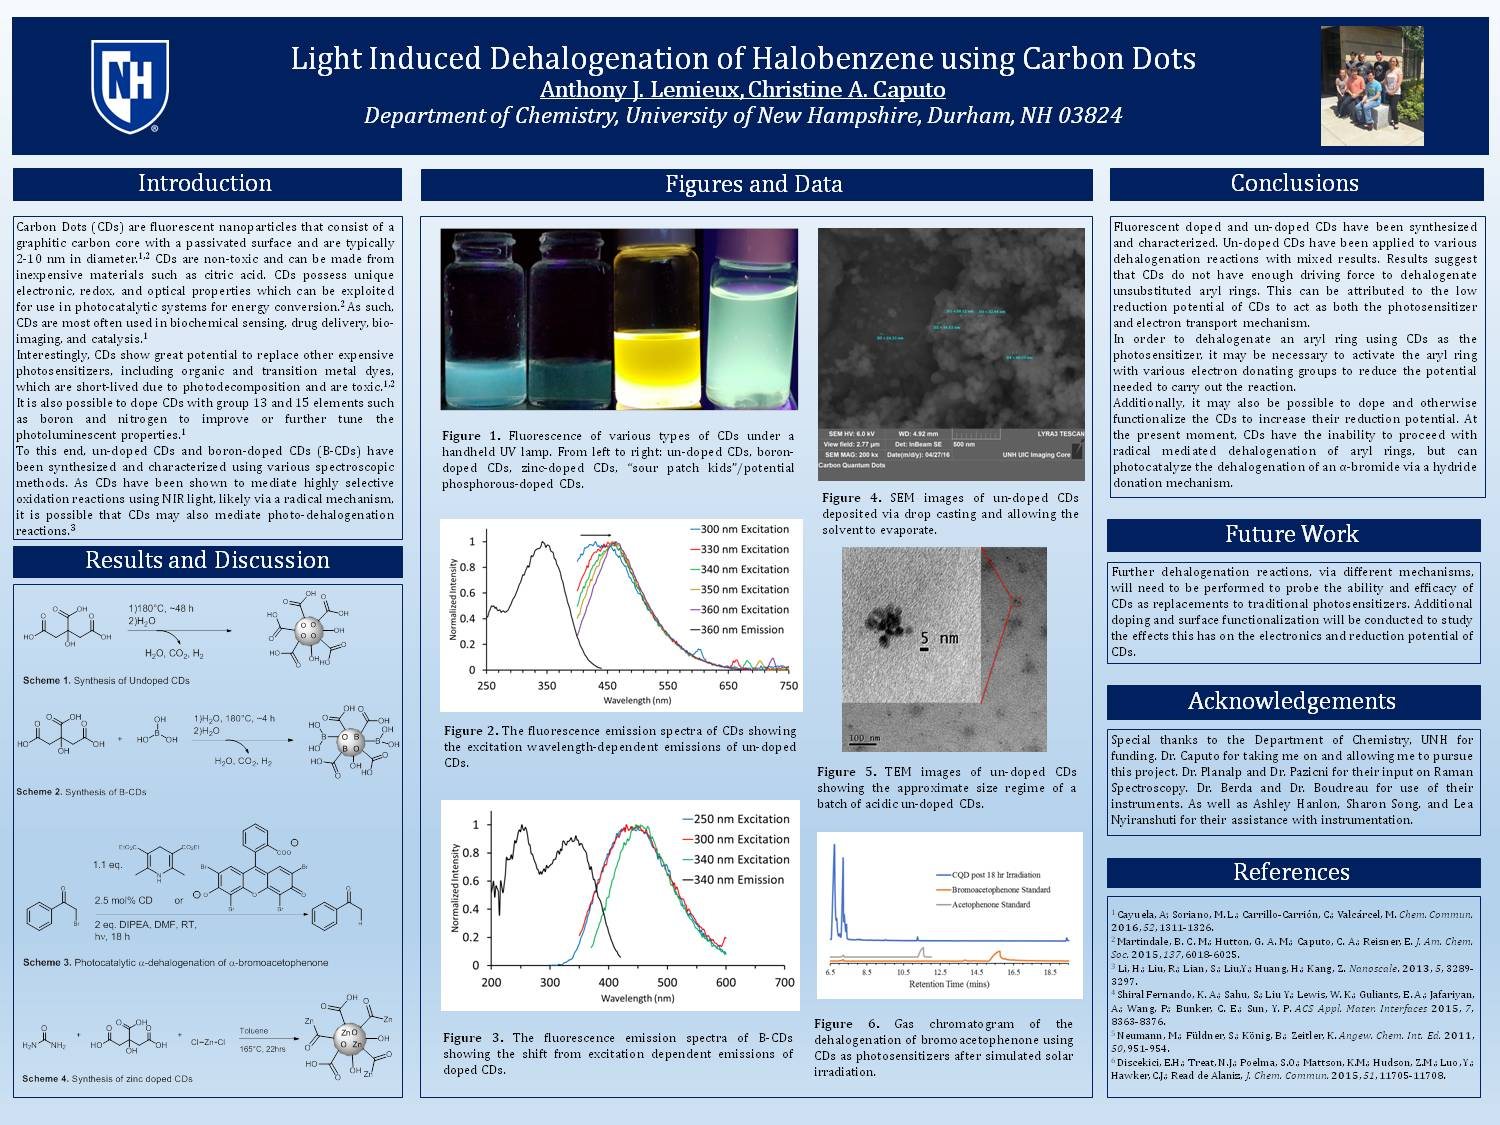 Light Induced Dehalogenation Of Halobenzene Using Carbon Dots by Al2007